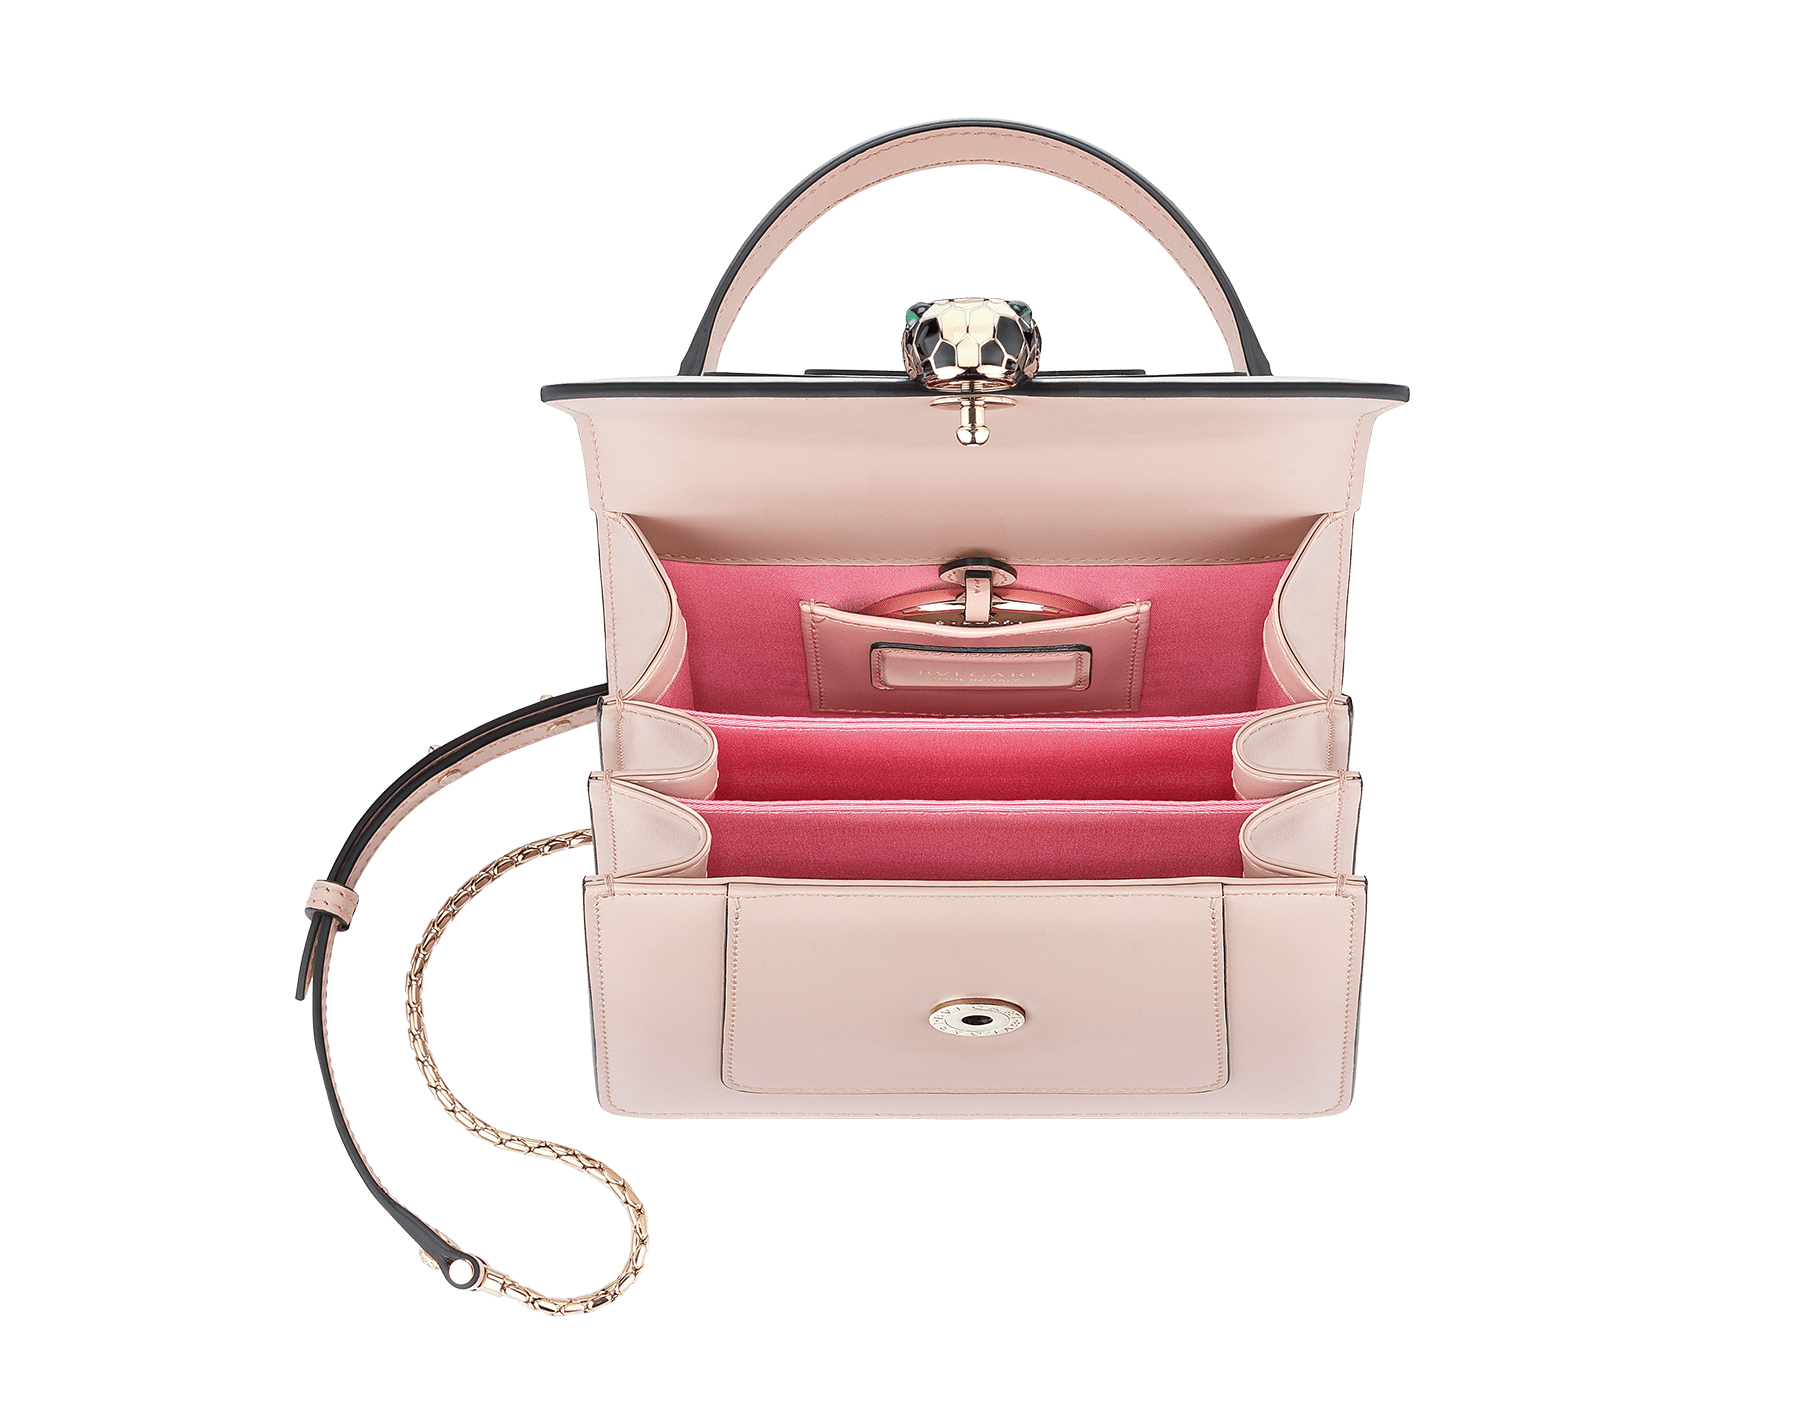 """Serpenti Forever"" crossbody bag in crystal rose calf leather. Iconic snakehead closure in light gold plated brass enriched with black and white enamel and green malachite eyes 287030 image 4"